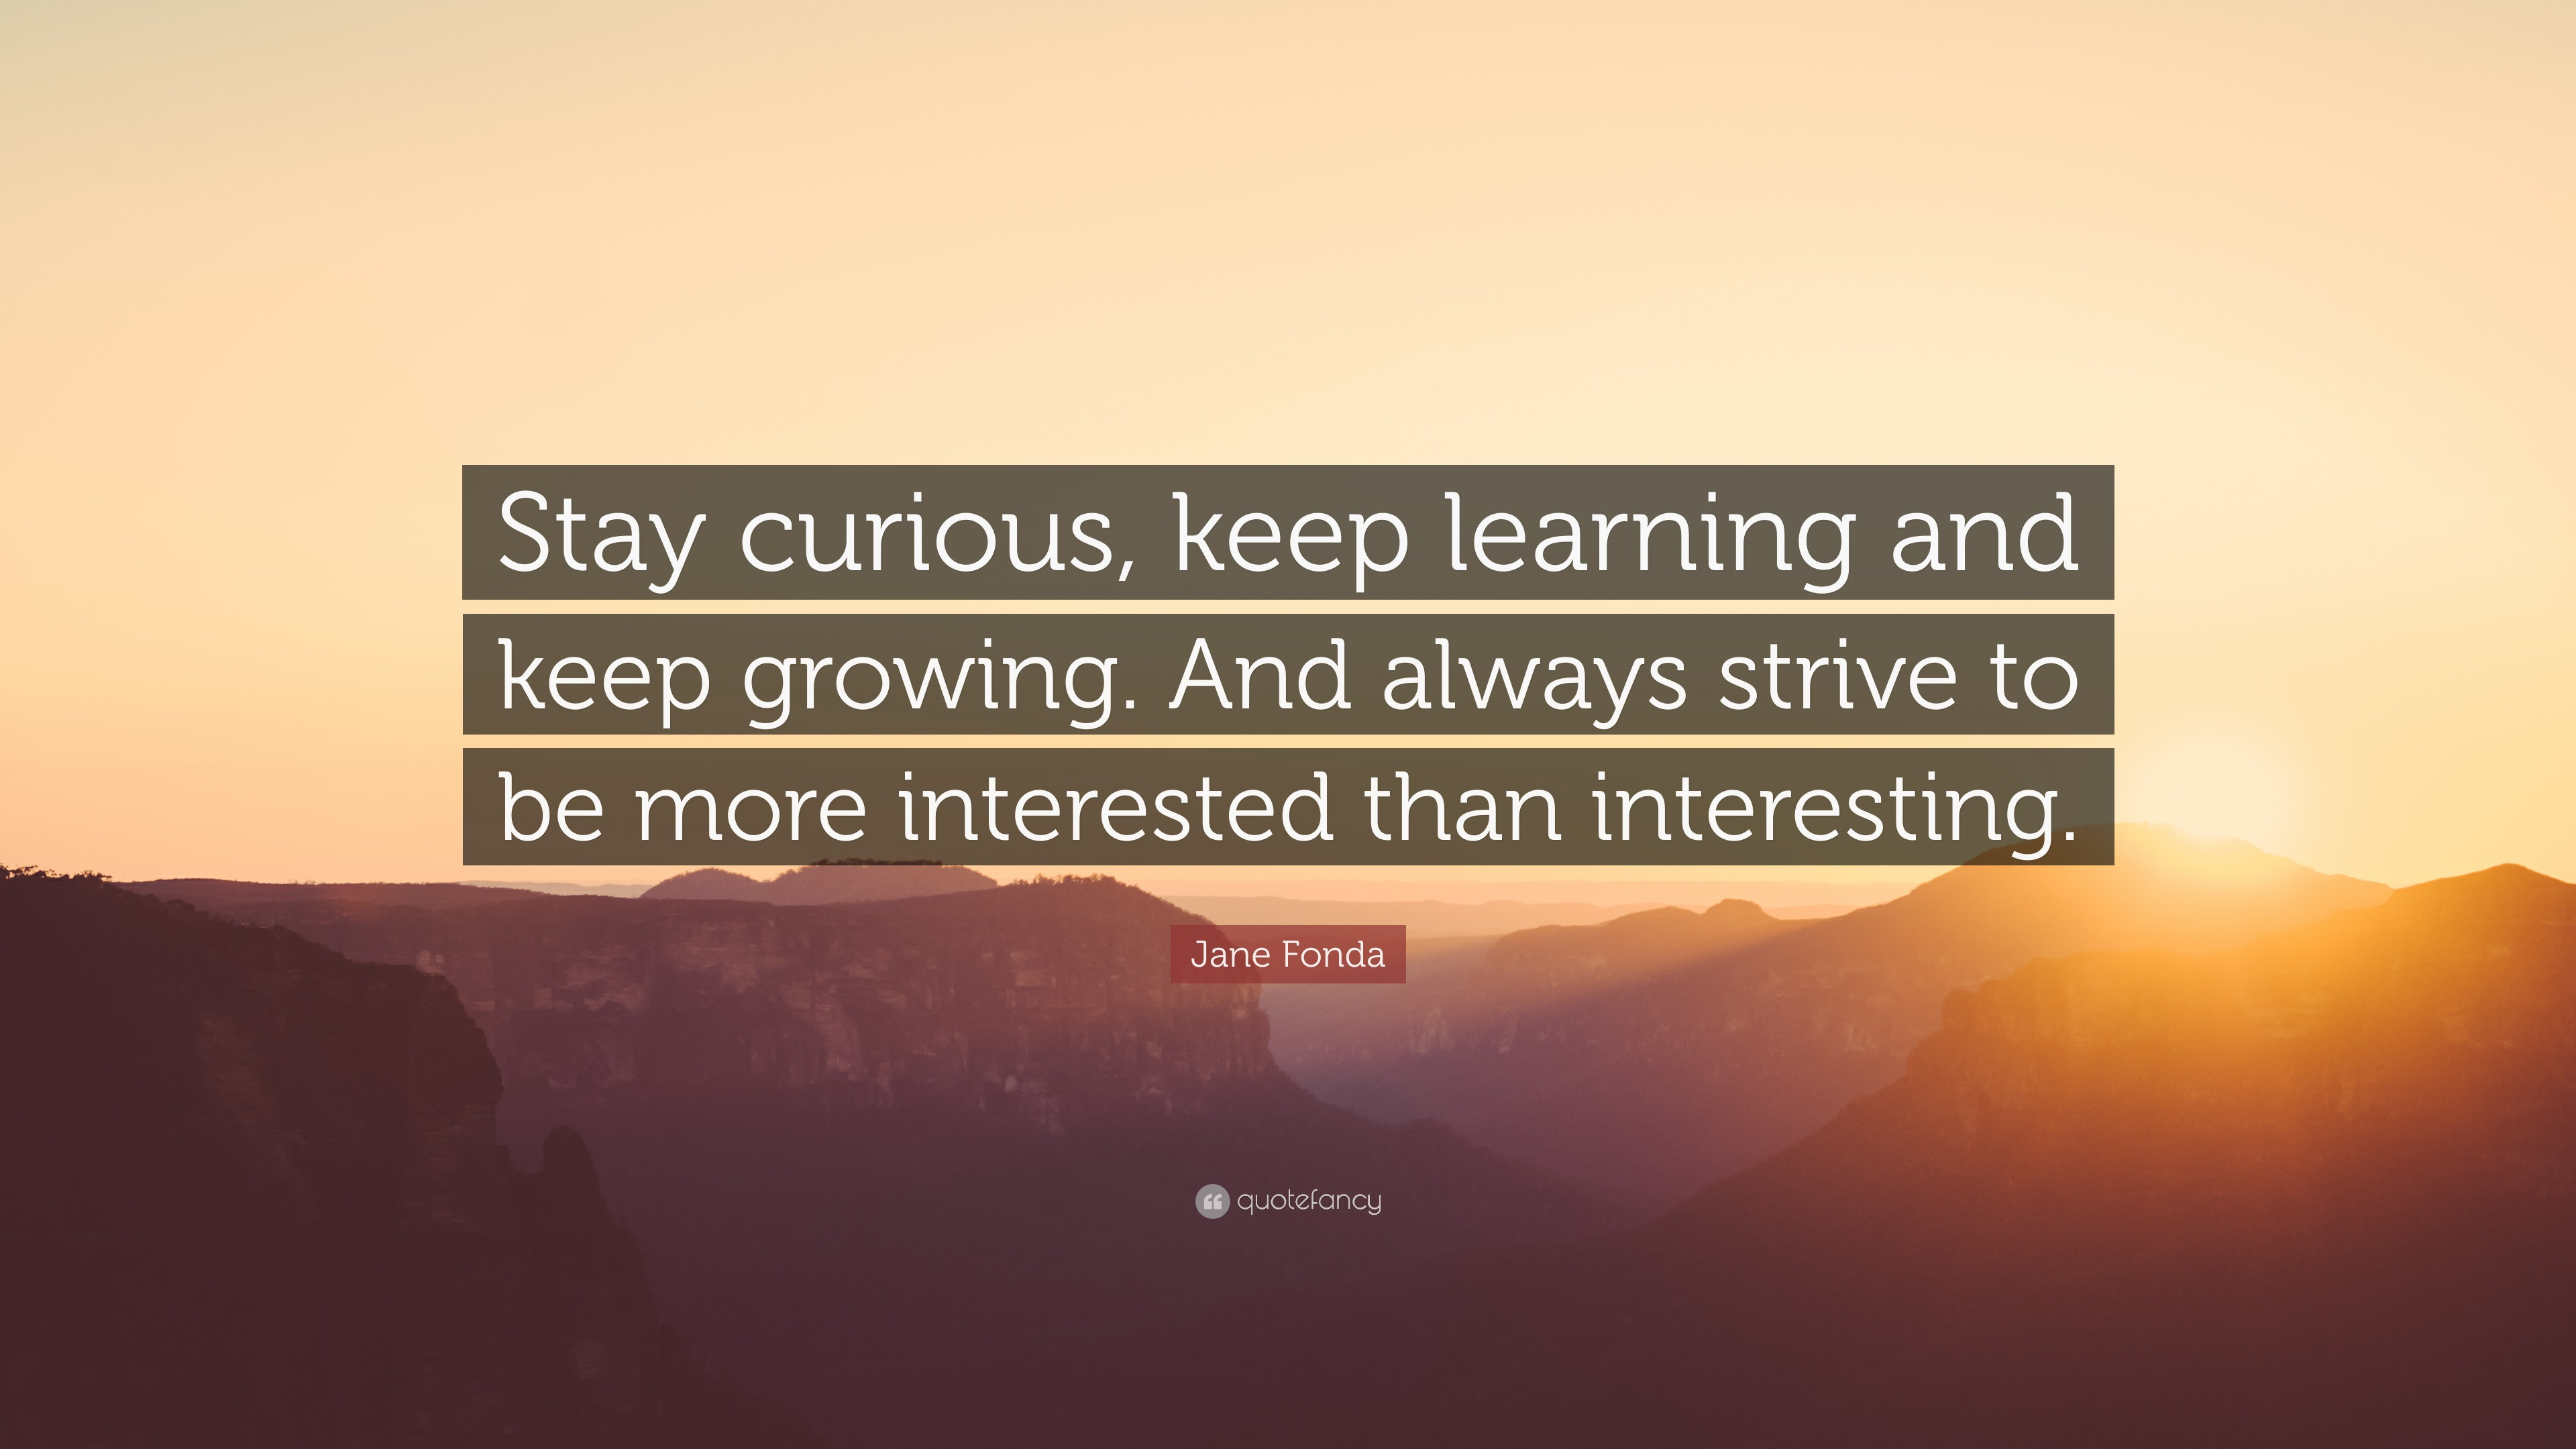 9 Wallpapers Jane Fonda Quote Stay Curious Keep Learning And Growing Always